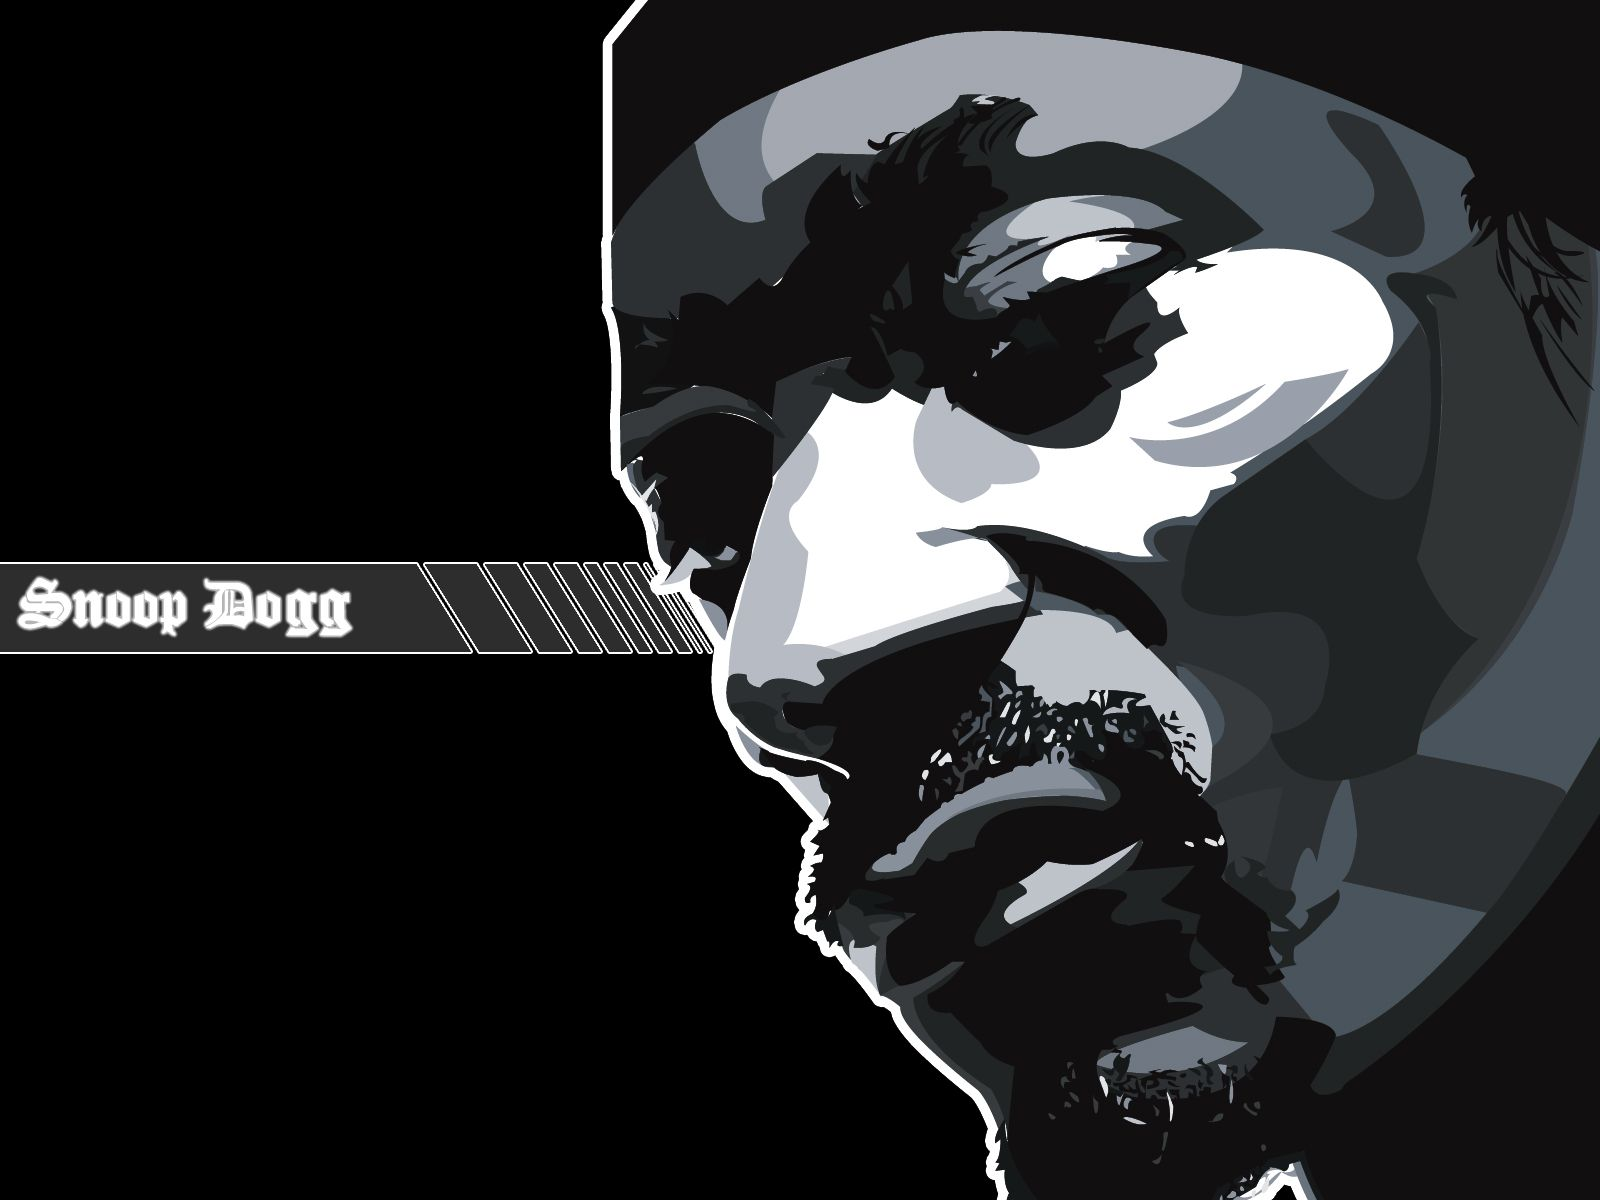 snoop dogg awesome hd graphic art wallpapers| hd wallpapers